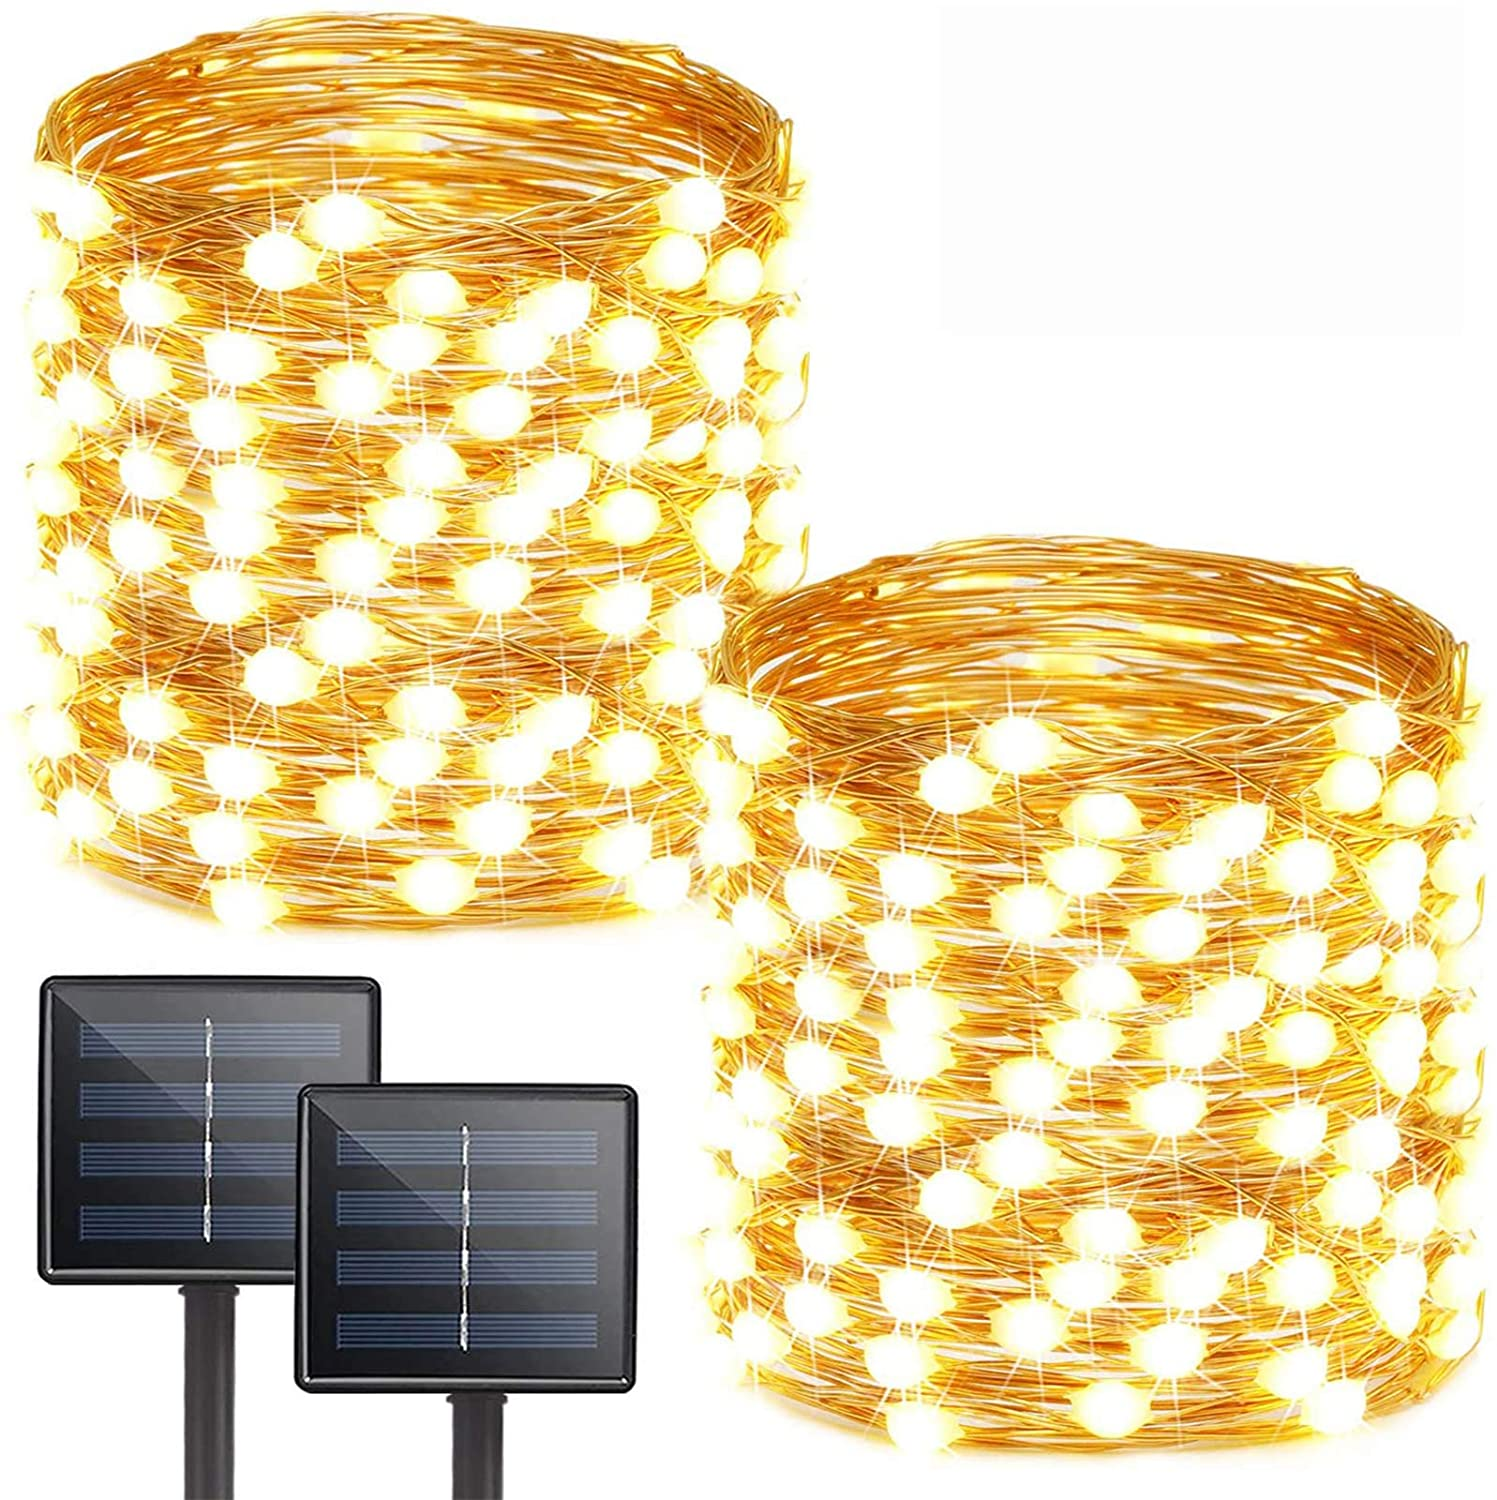 Albelt 2-Pack Each 72ft 200 LED Solar Lights Outdoor String (Ultra-Bright & Extra-Long), Upgraded Solar Christmas Lights, IP65 Waterproof Copper Wire 8 Modes Solar Powered Fairy Lights (Warm White)